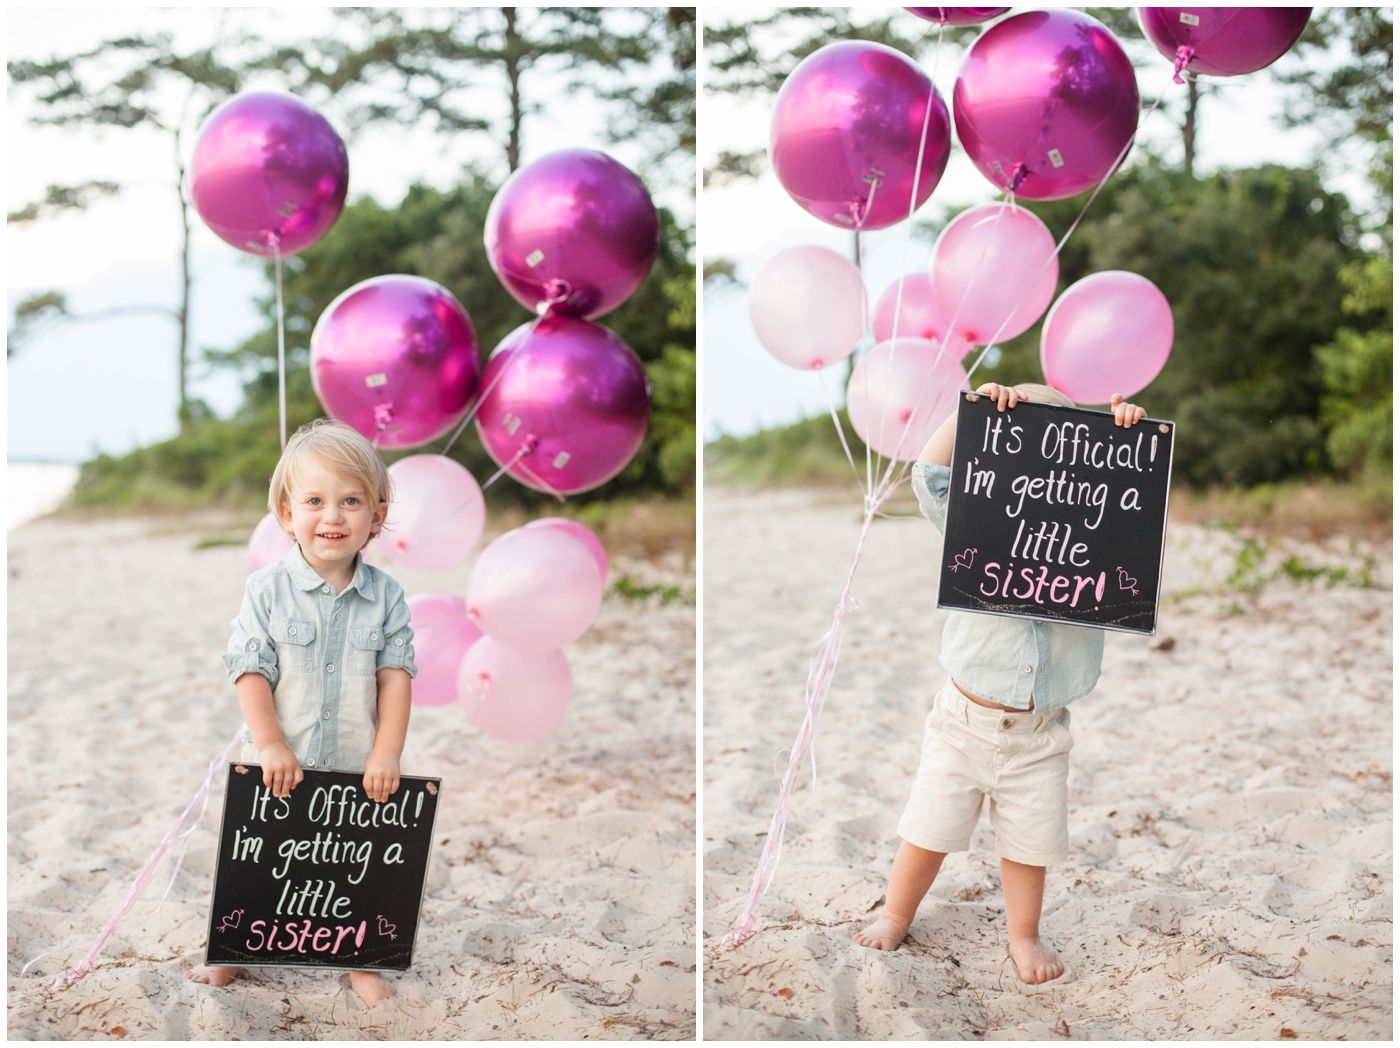 Virginia Beach Maternity Photography Gender Reveal Pink Balloons Chalkboard Sign Brother Little Sister Angie Mcpherson